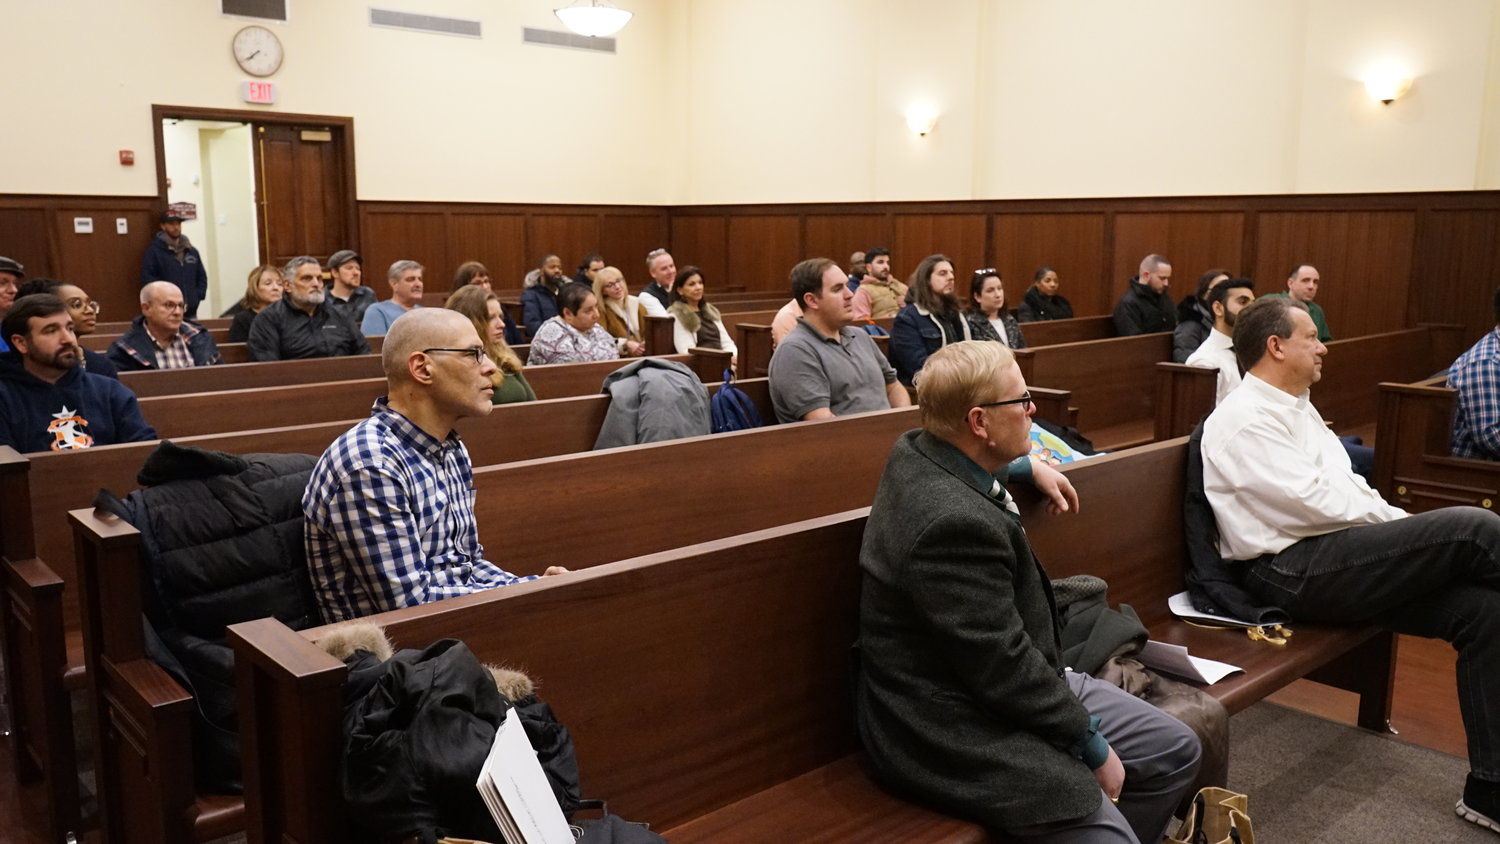 Members of Valley Stream's Downtown Revitalization Task Force gathered at the village courthouse to hear about the methods three village mayors in Nassau County have employed to revitalize their downtowns.